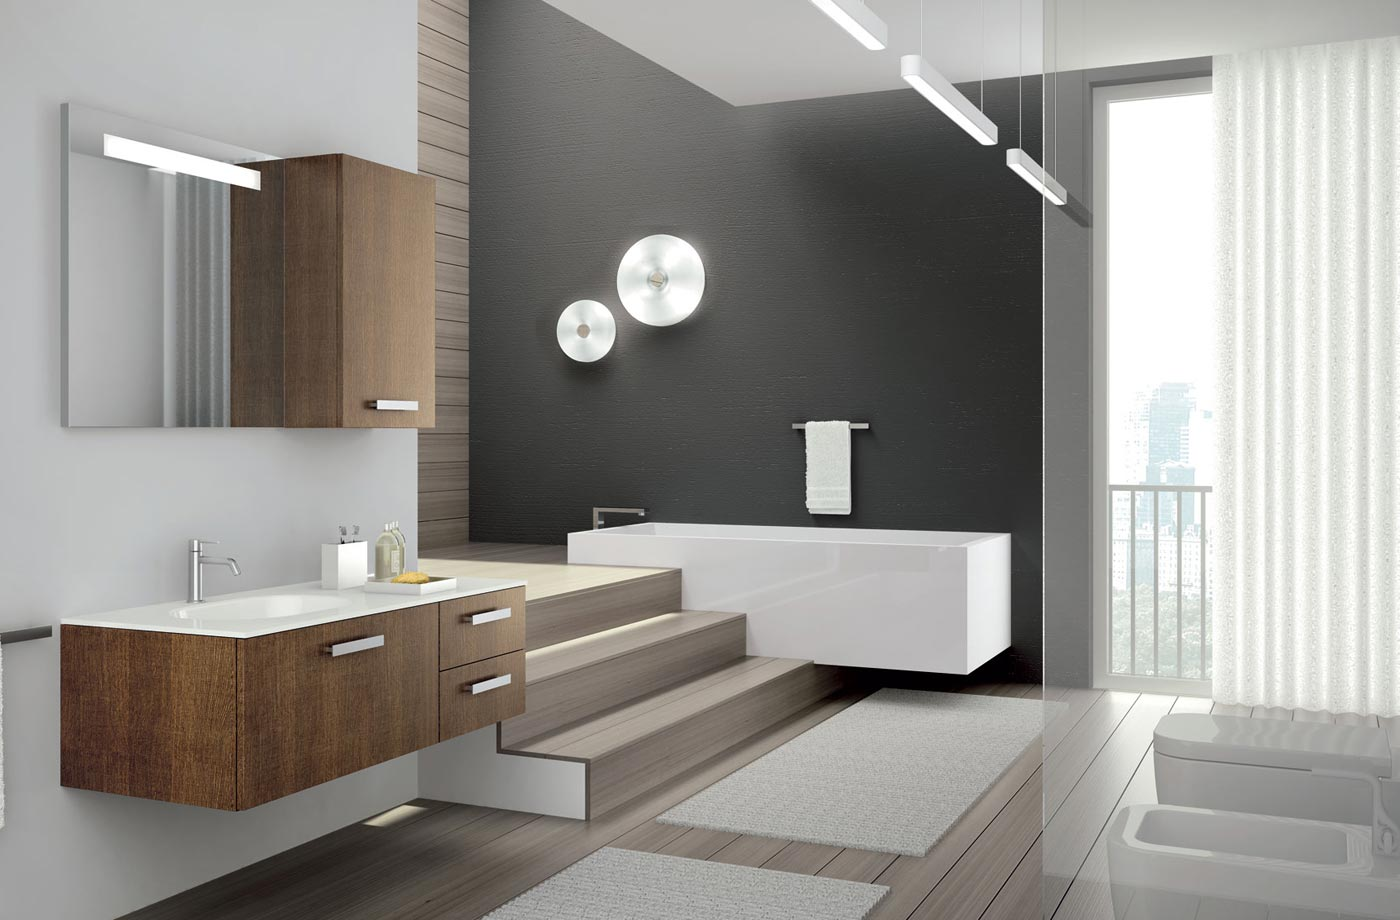 Aberia cucine for Simply bathrooms